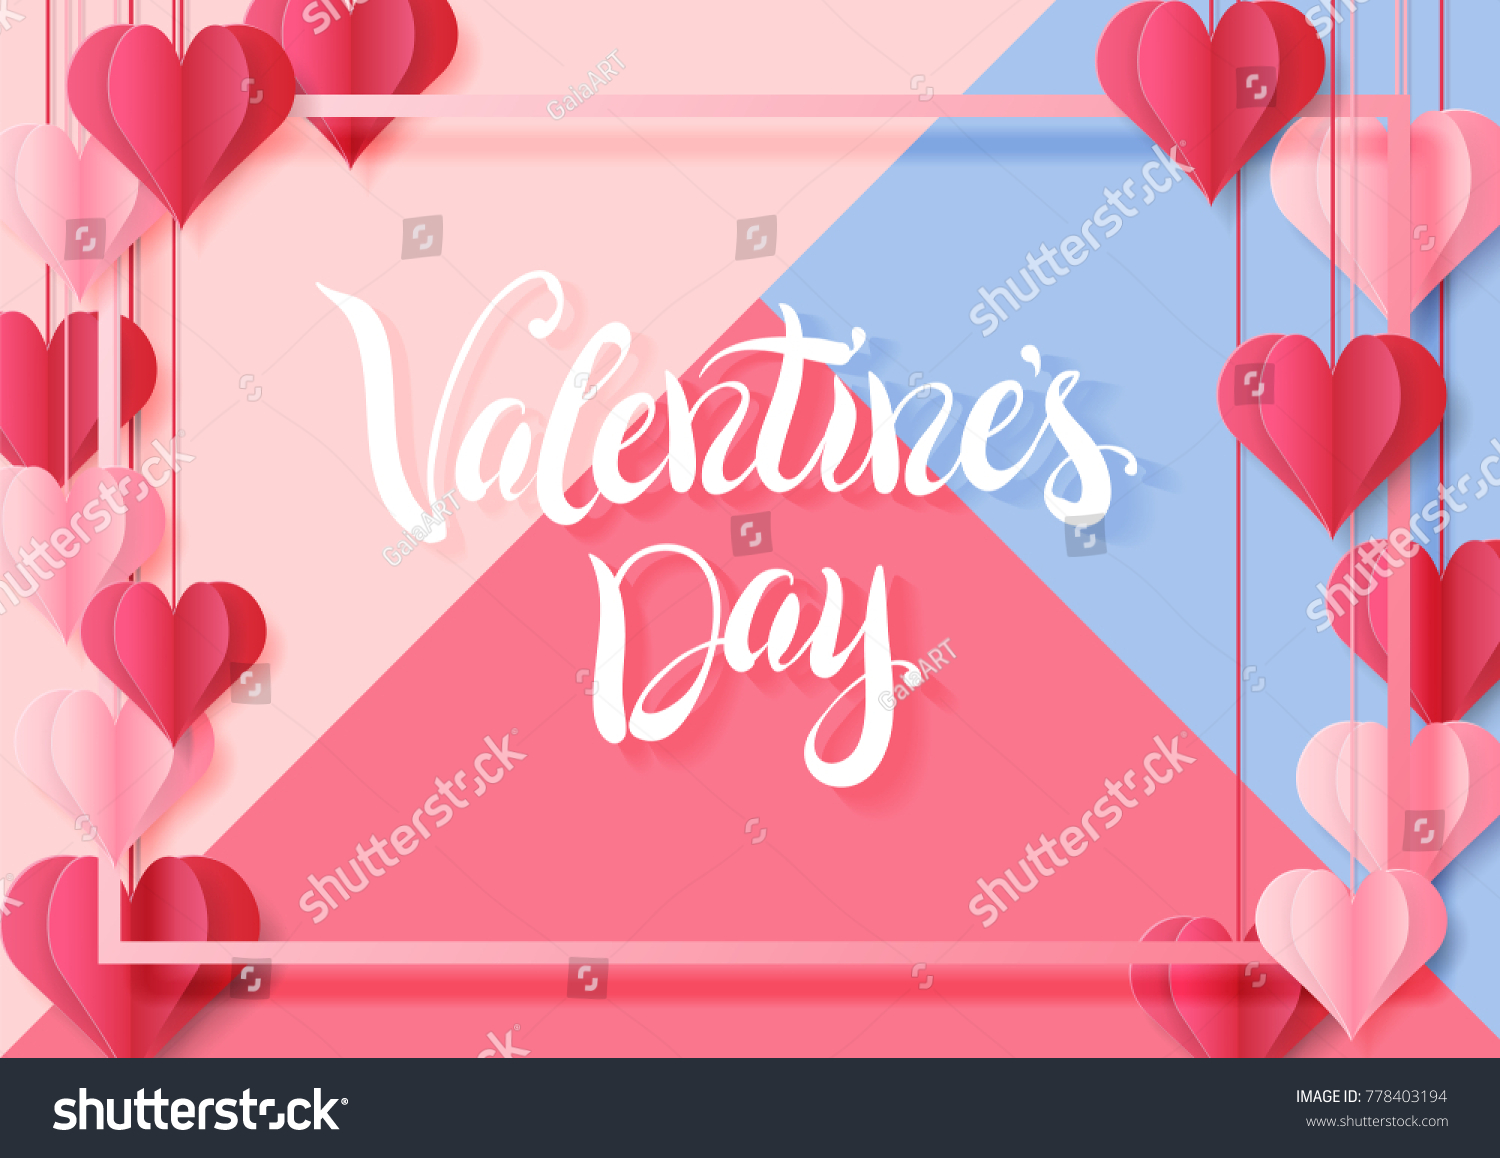 Happy valentines day design greeting card stock vector 778403194 happy valentines day design for greeting card can be used on banners or web kristyandbryce Choice Image